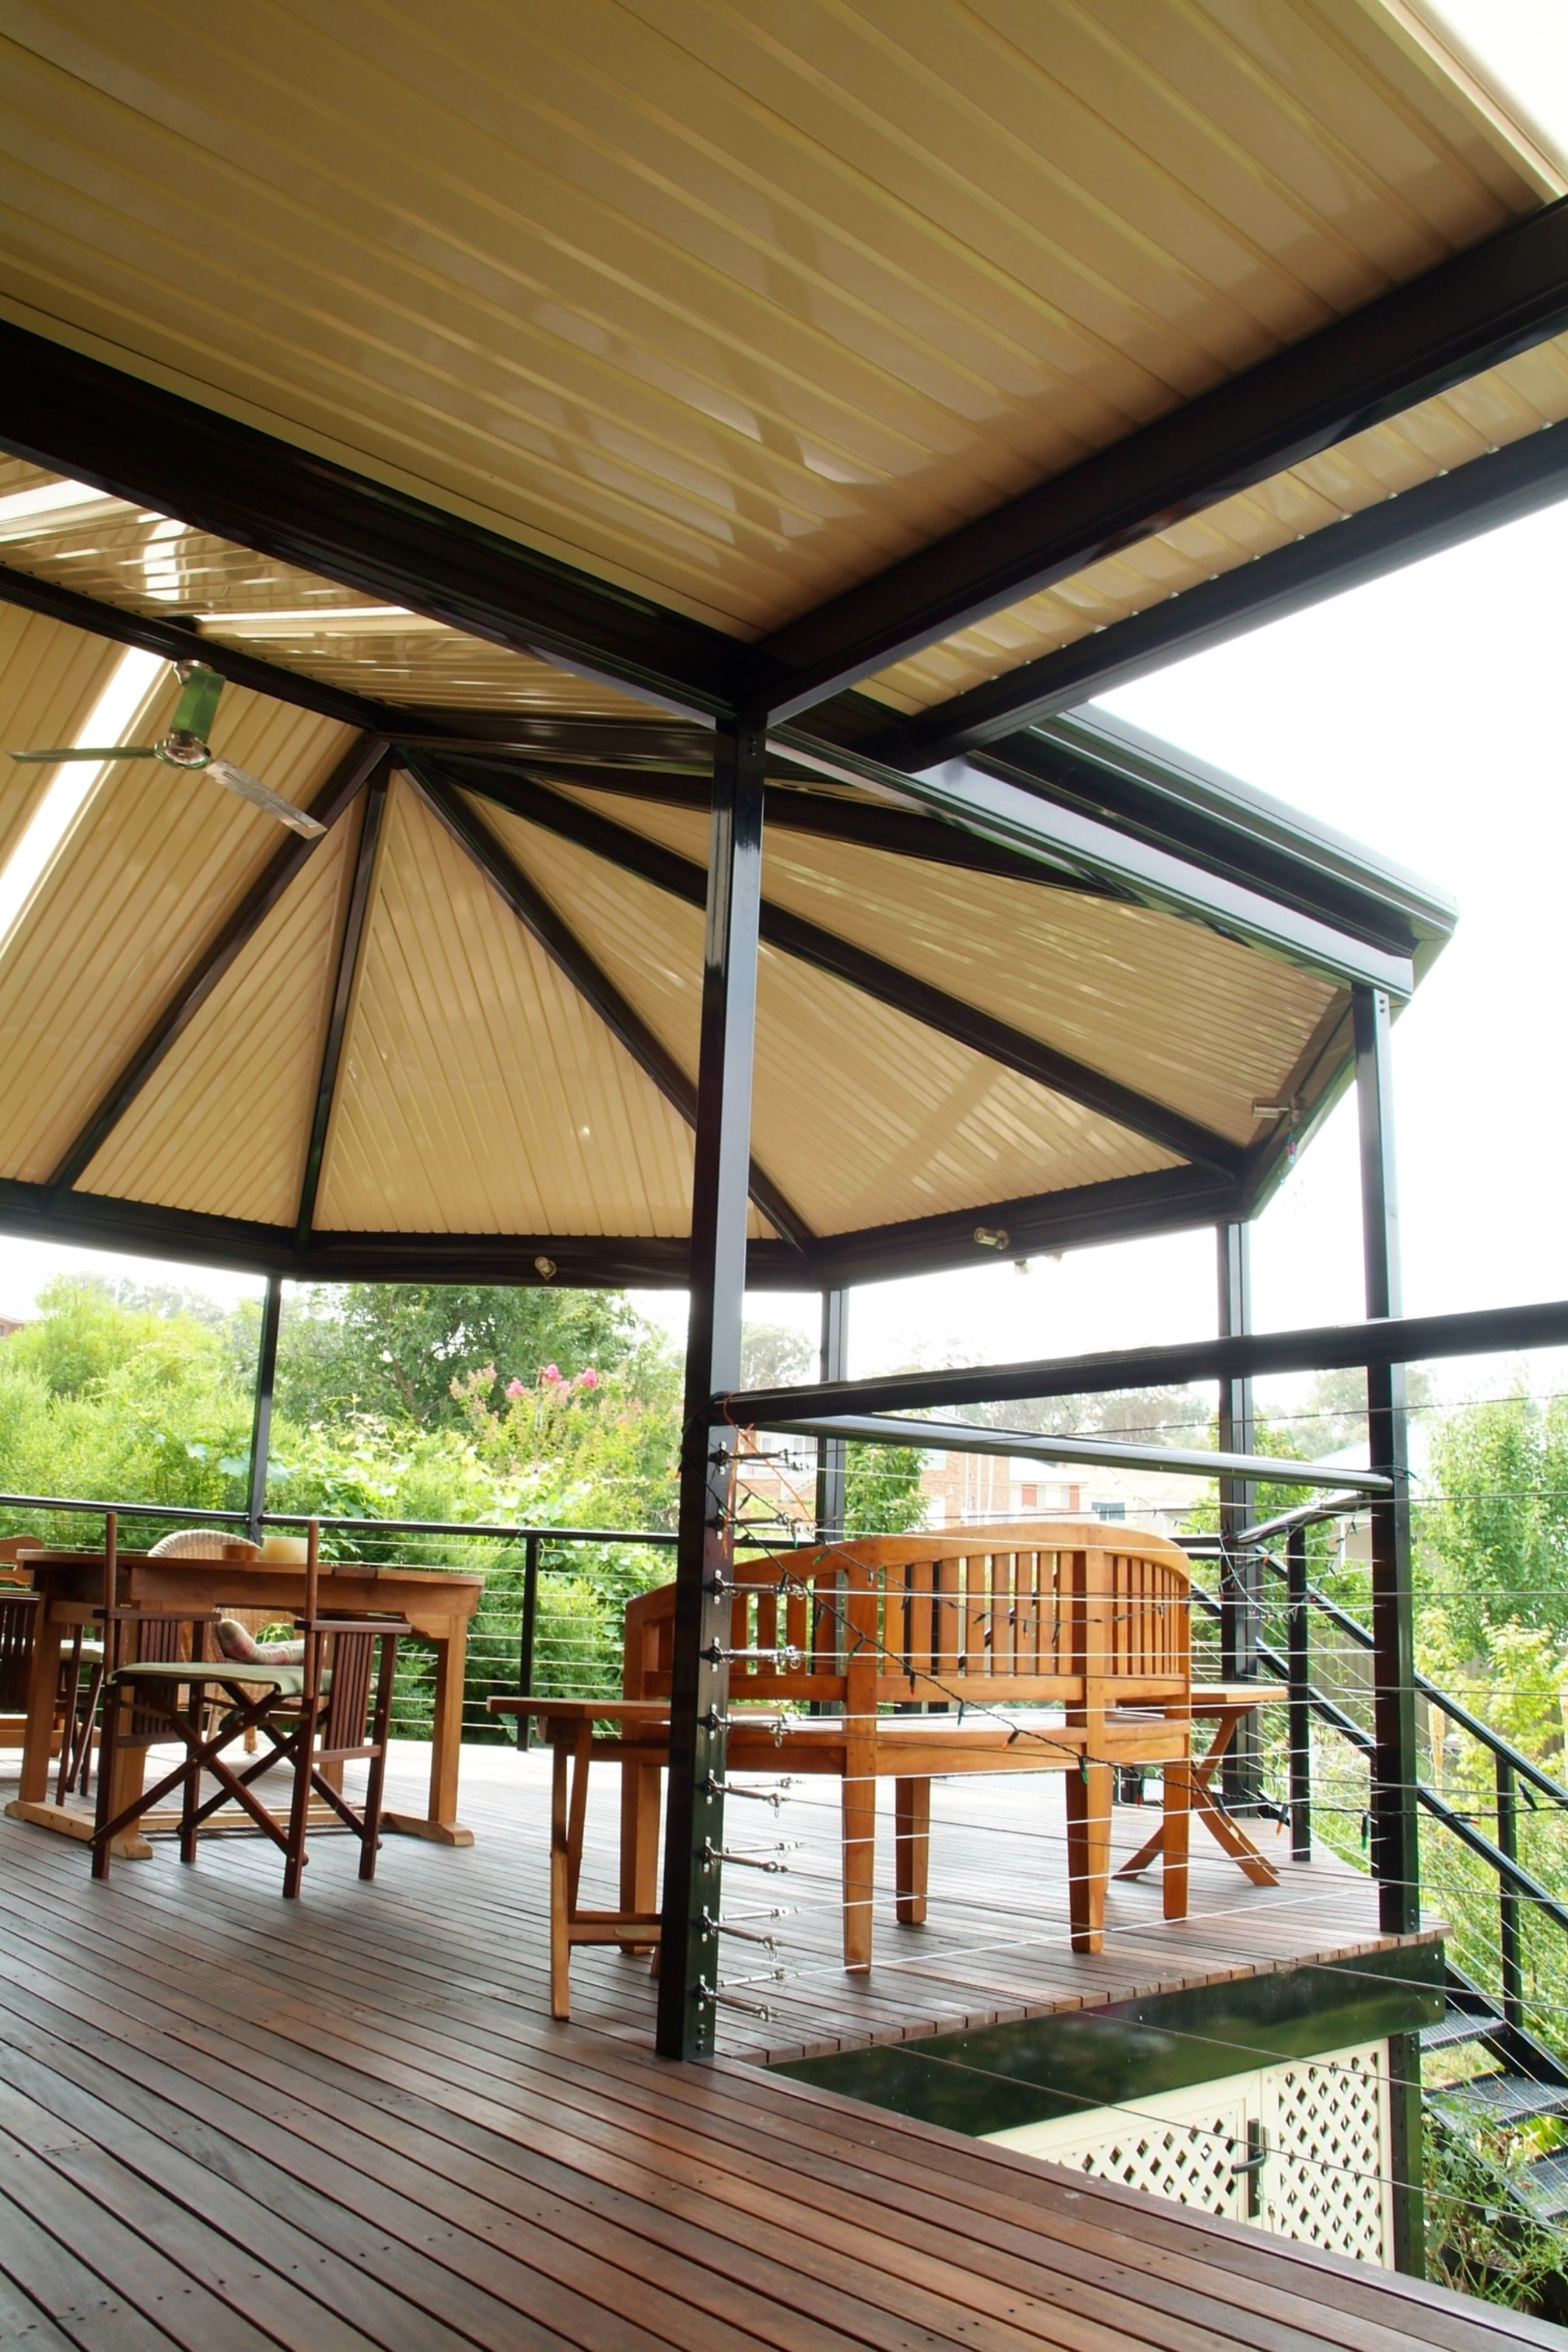 Outback Gazebo end over deck